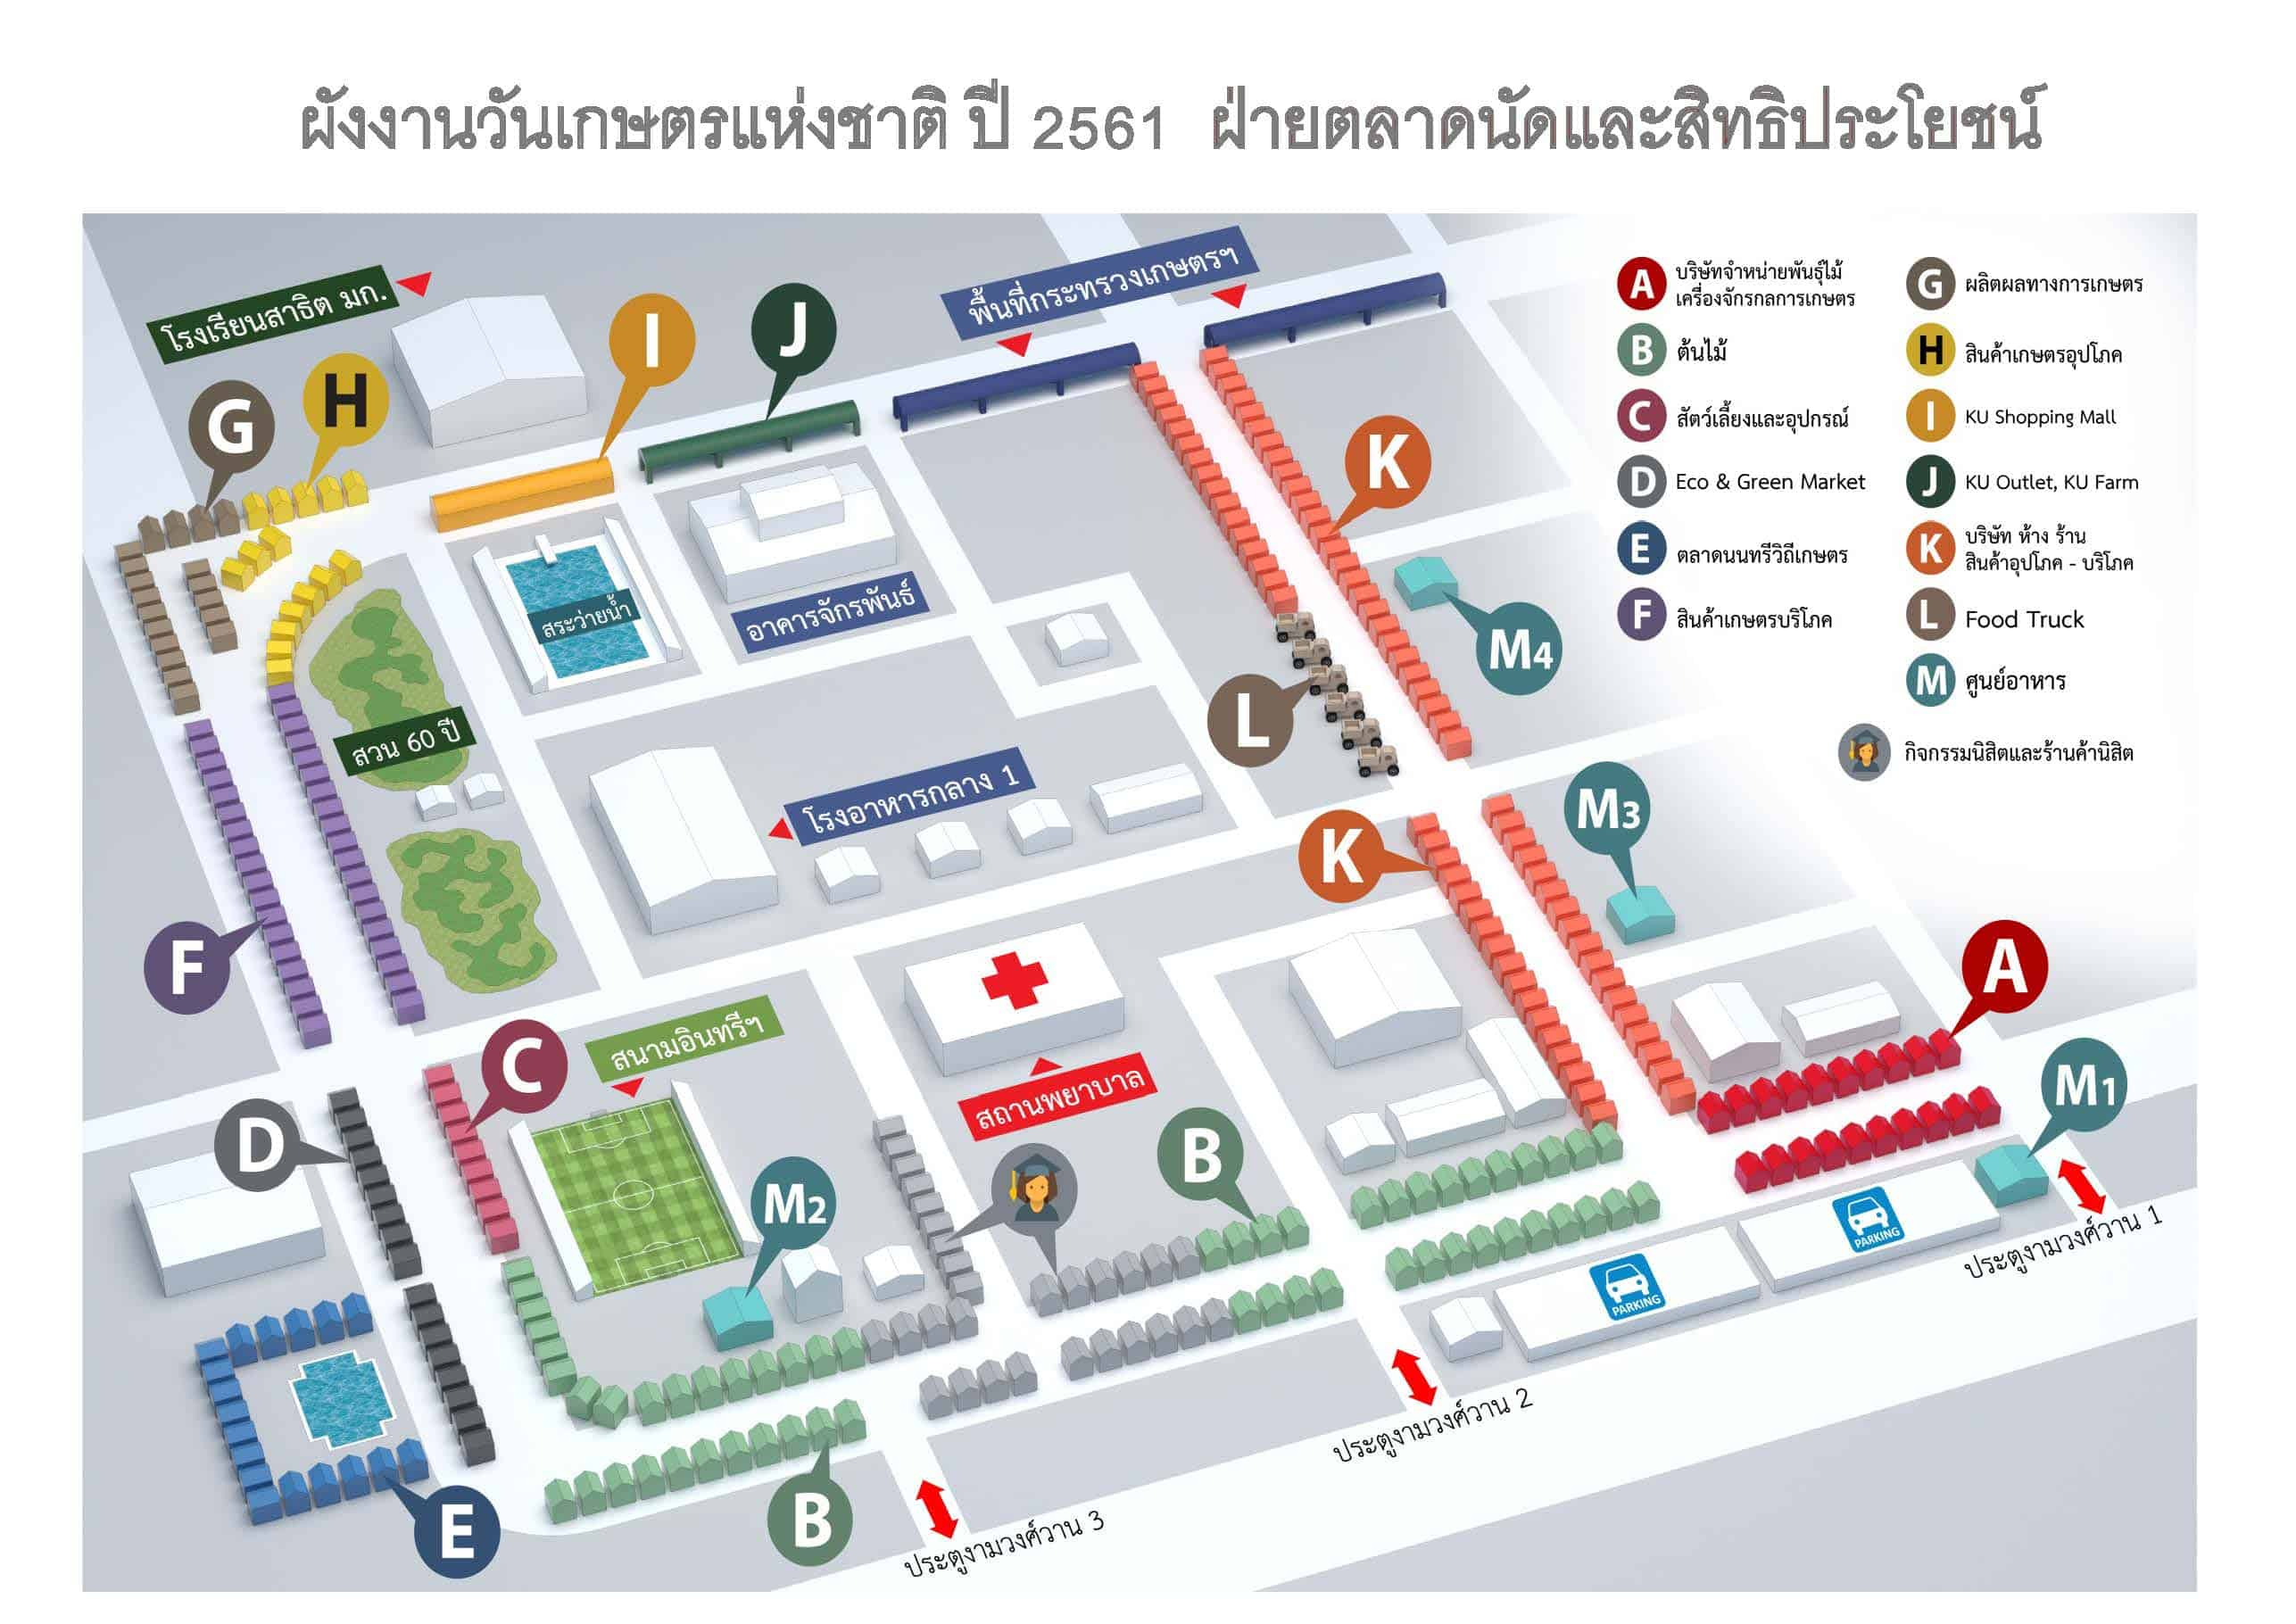 KasetFair Map